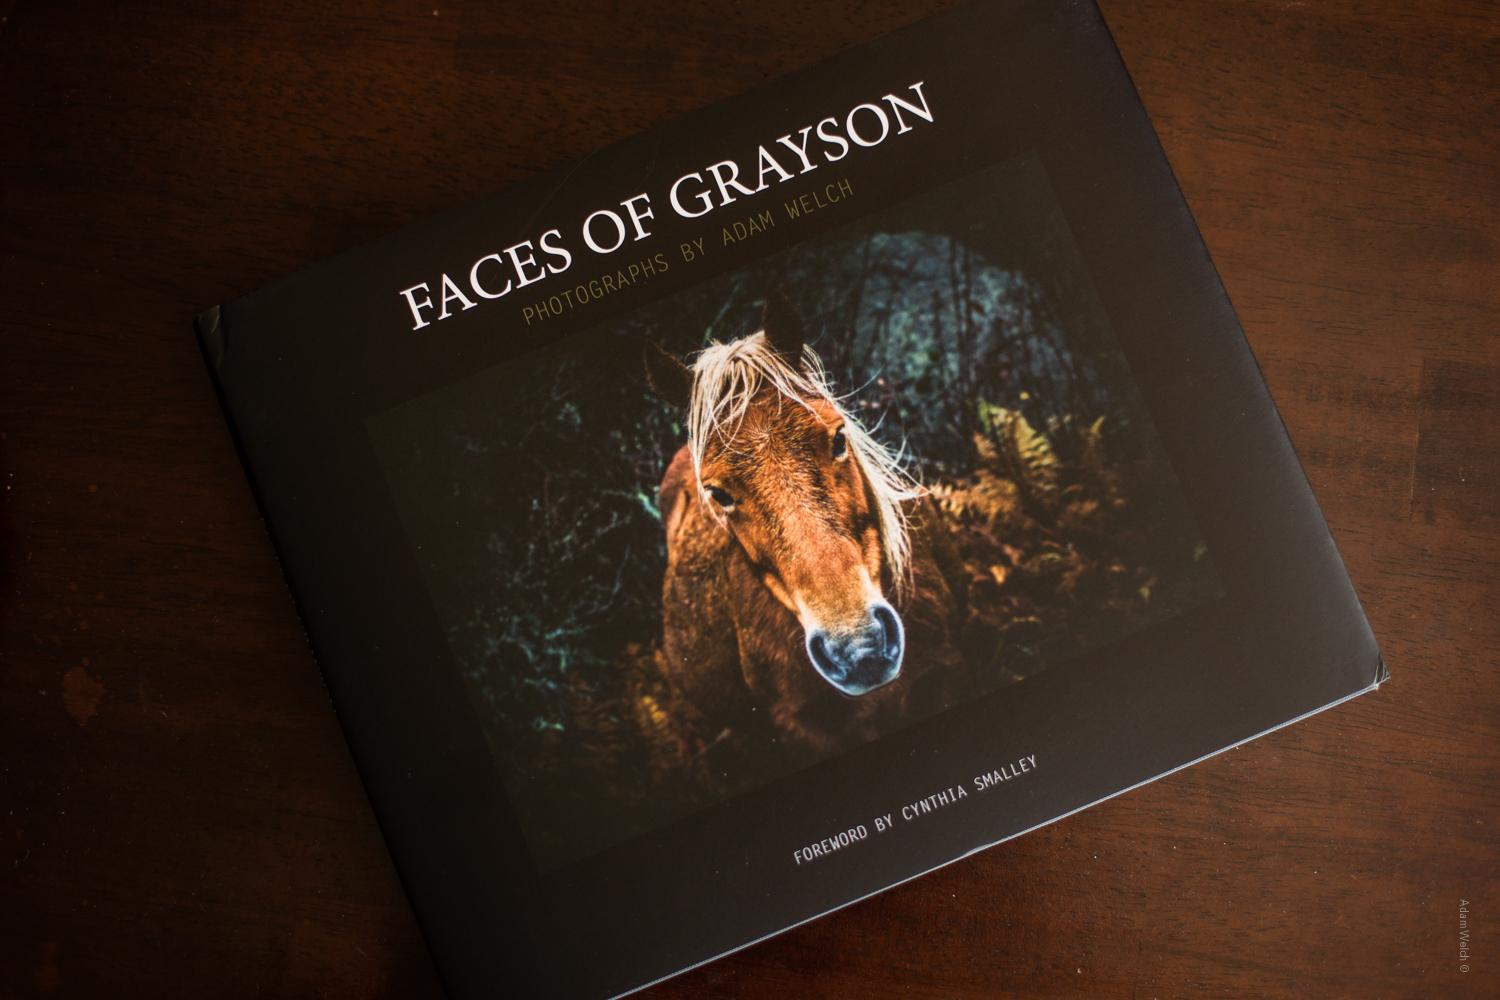 Photo Books: Value and Worth in Today's Digital World